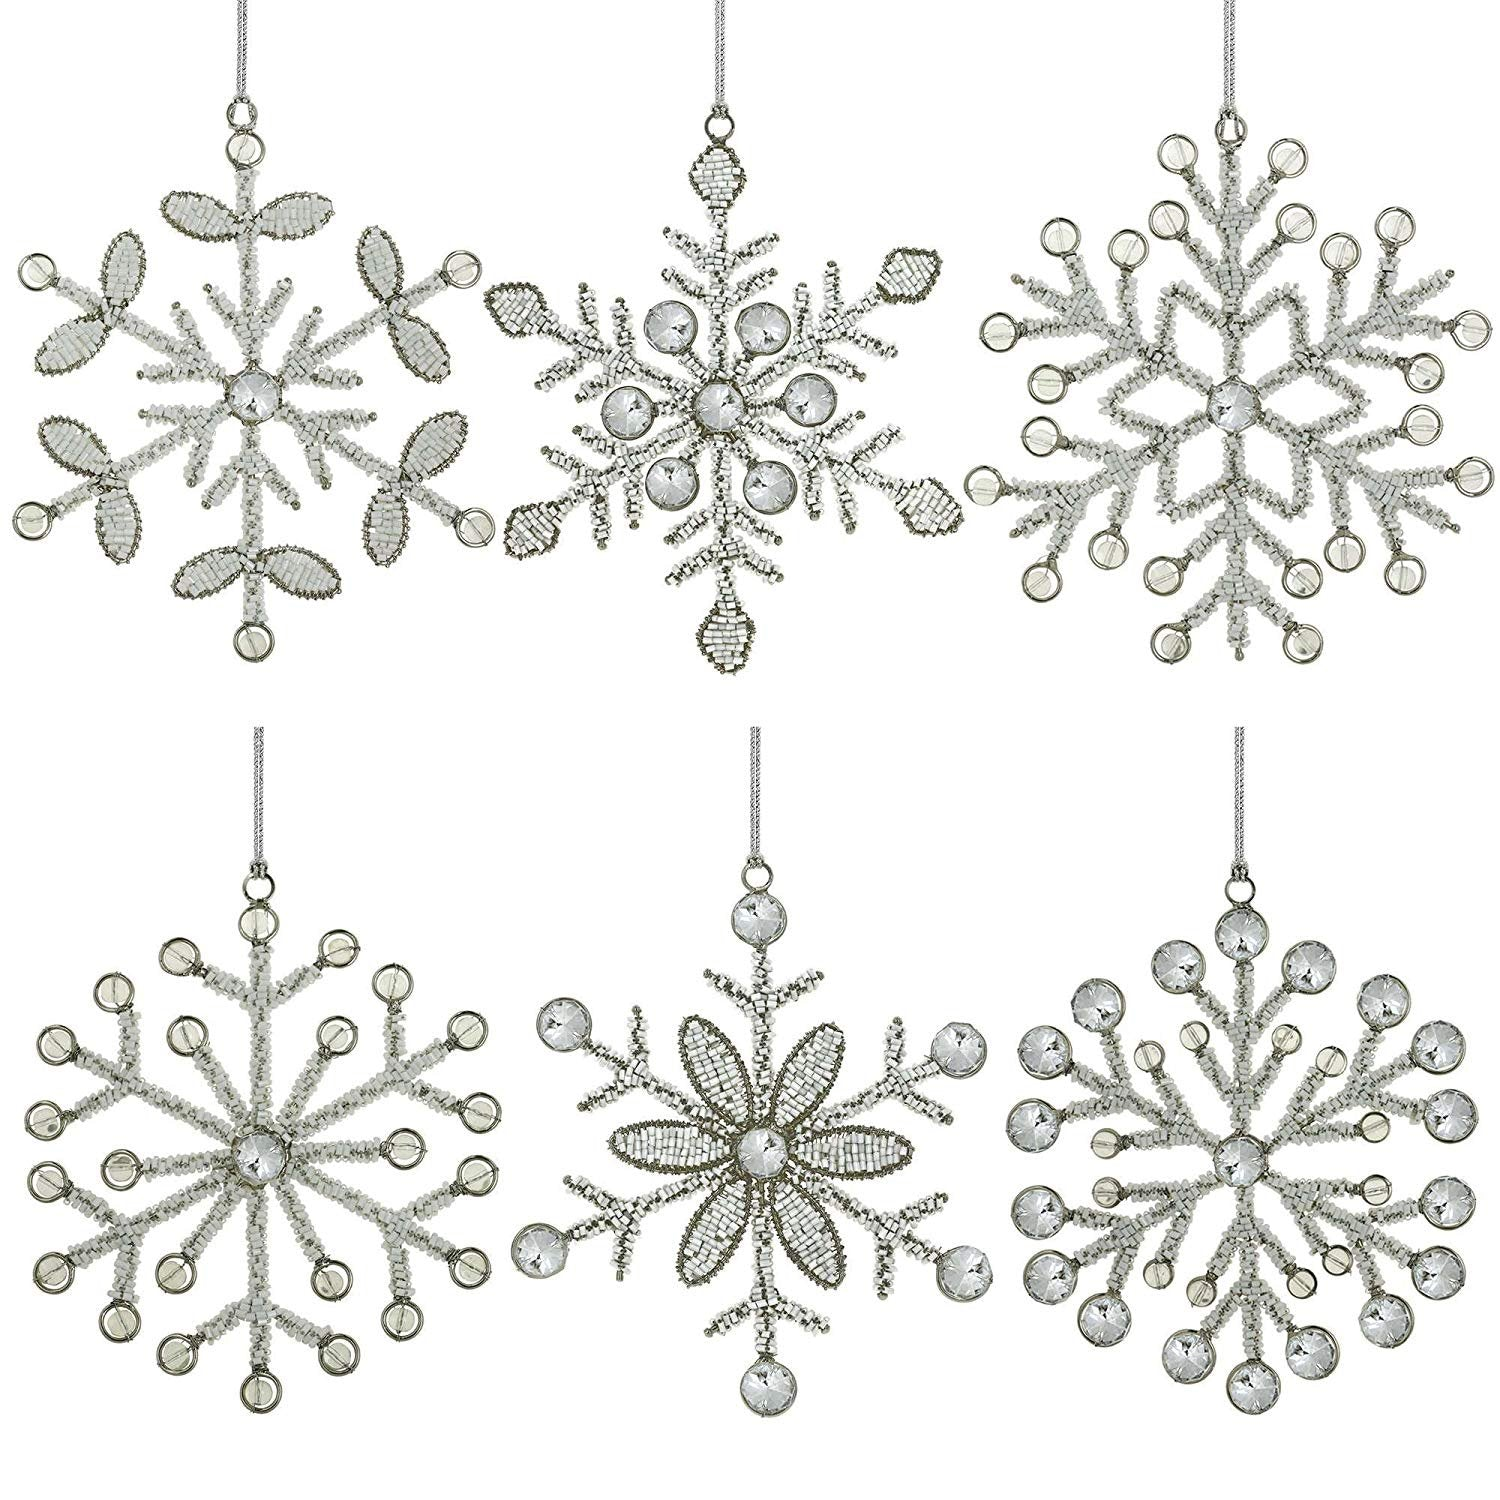 ShalinIndia Set of 6 Handmade Snowflake Iron and Glass Pendant Christmas Tree Ornaments (9 Inches)